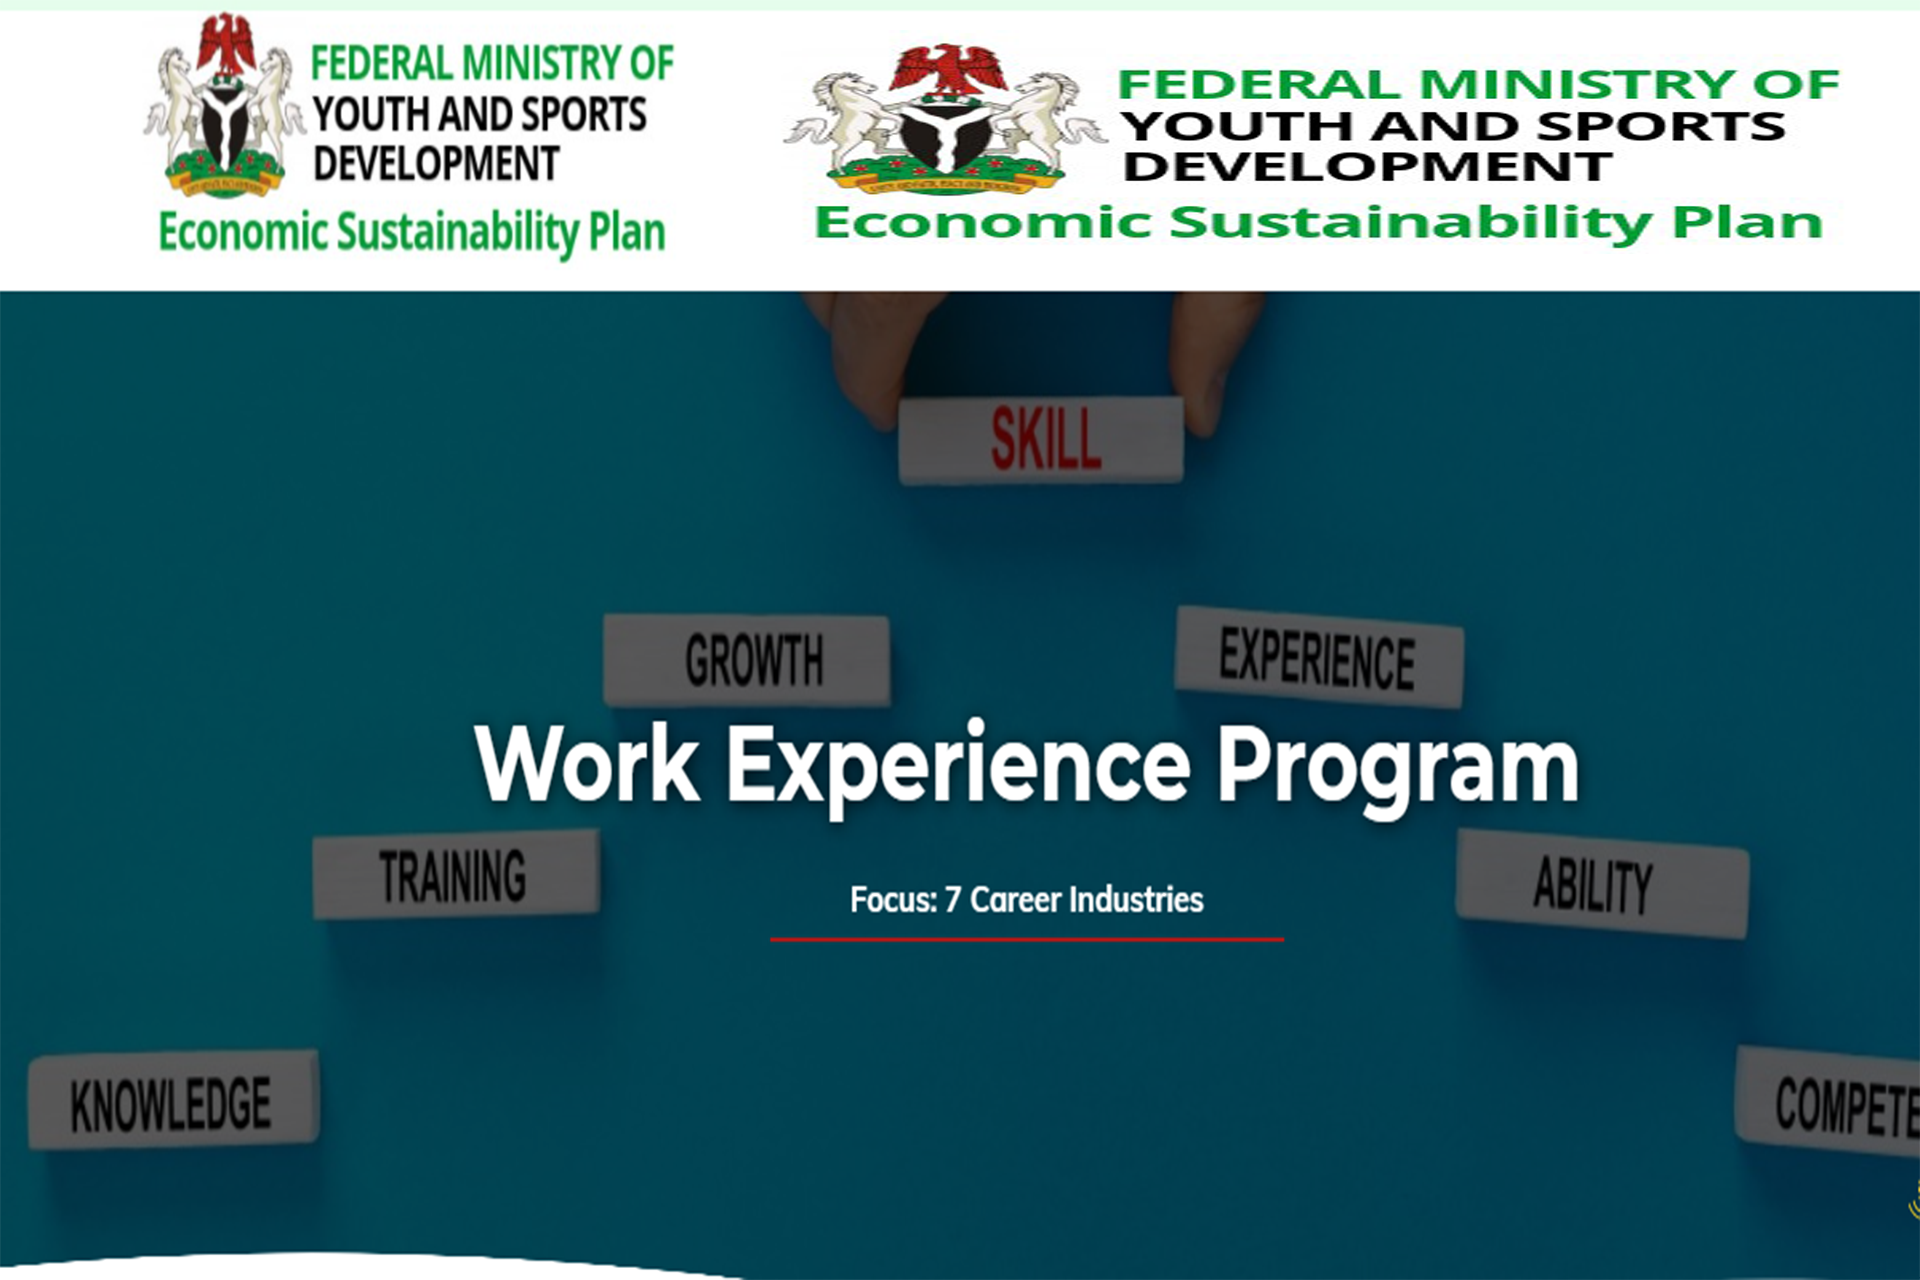 How To Apply For The Federal Ministry Of Youth And Sports Development